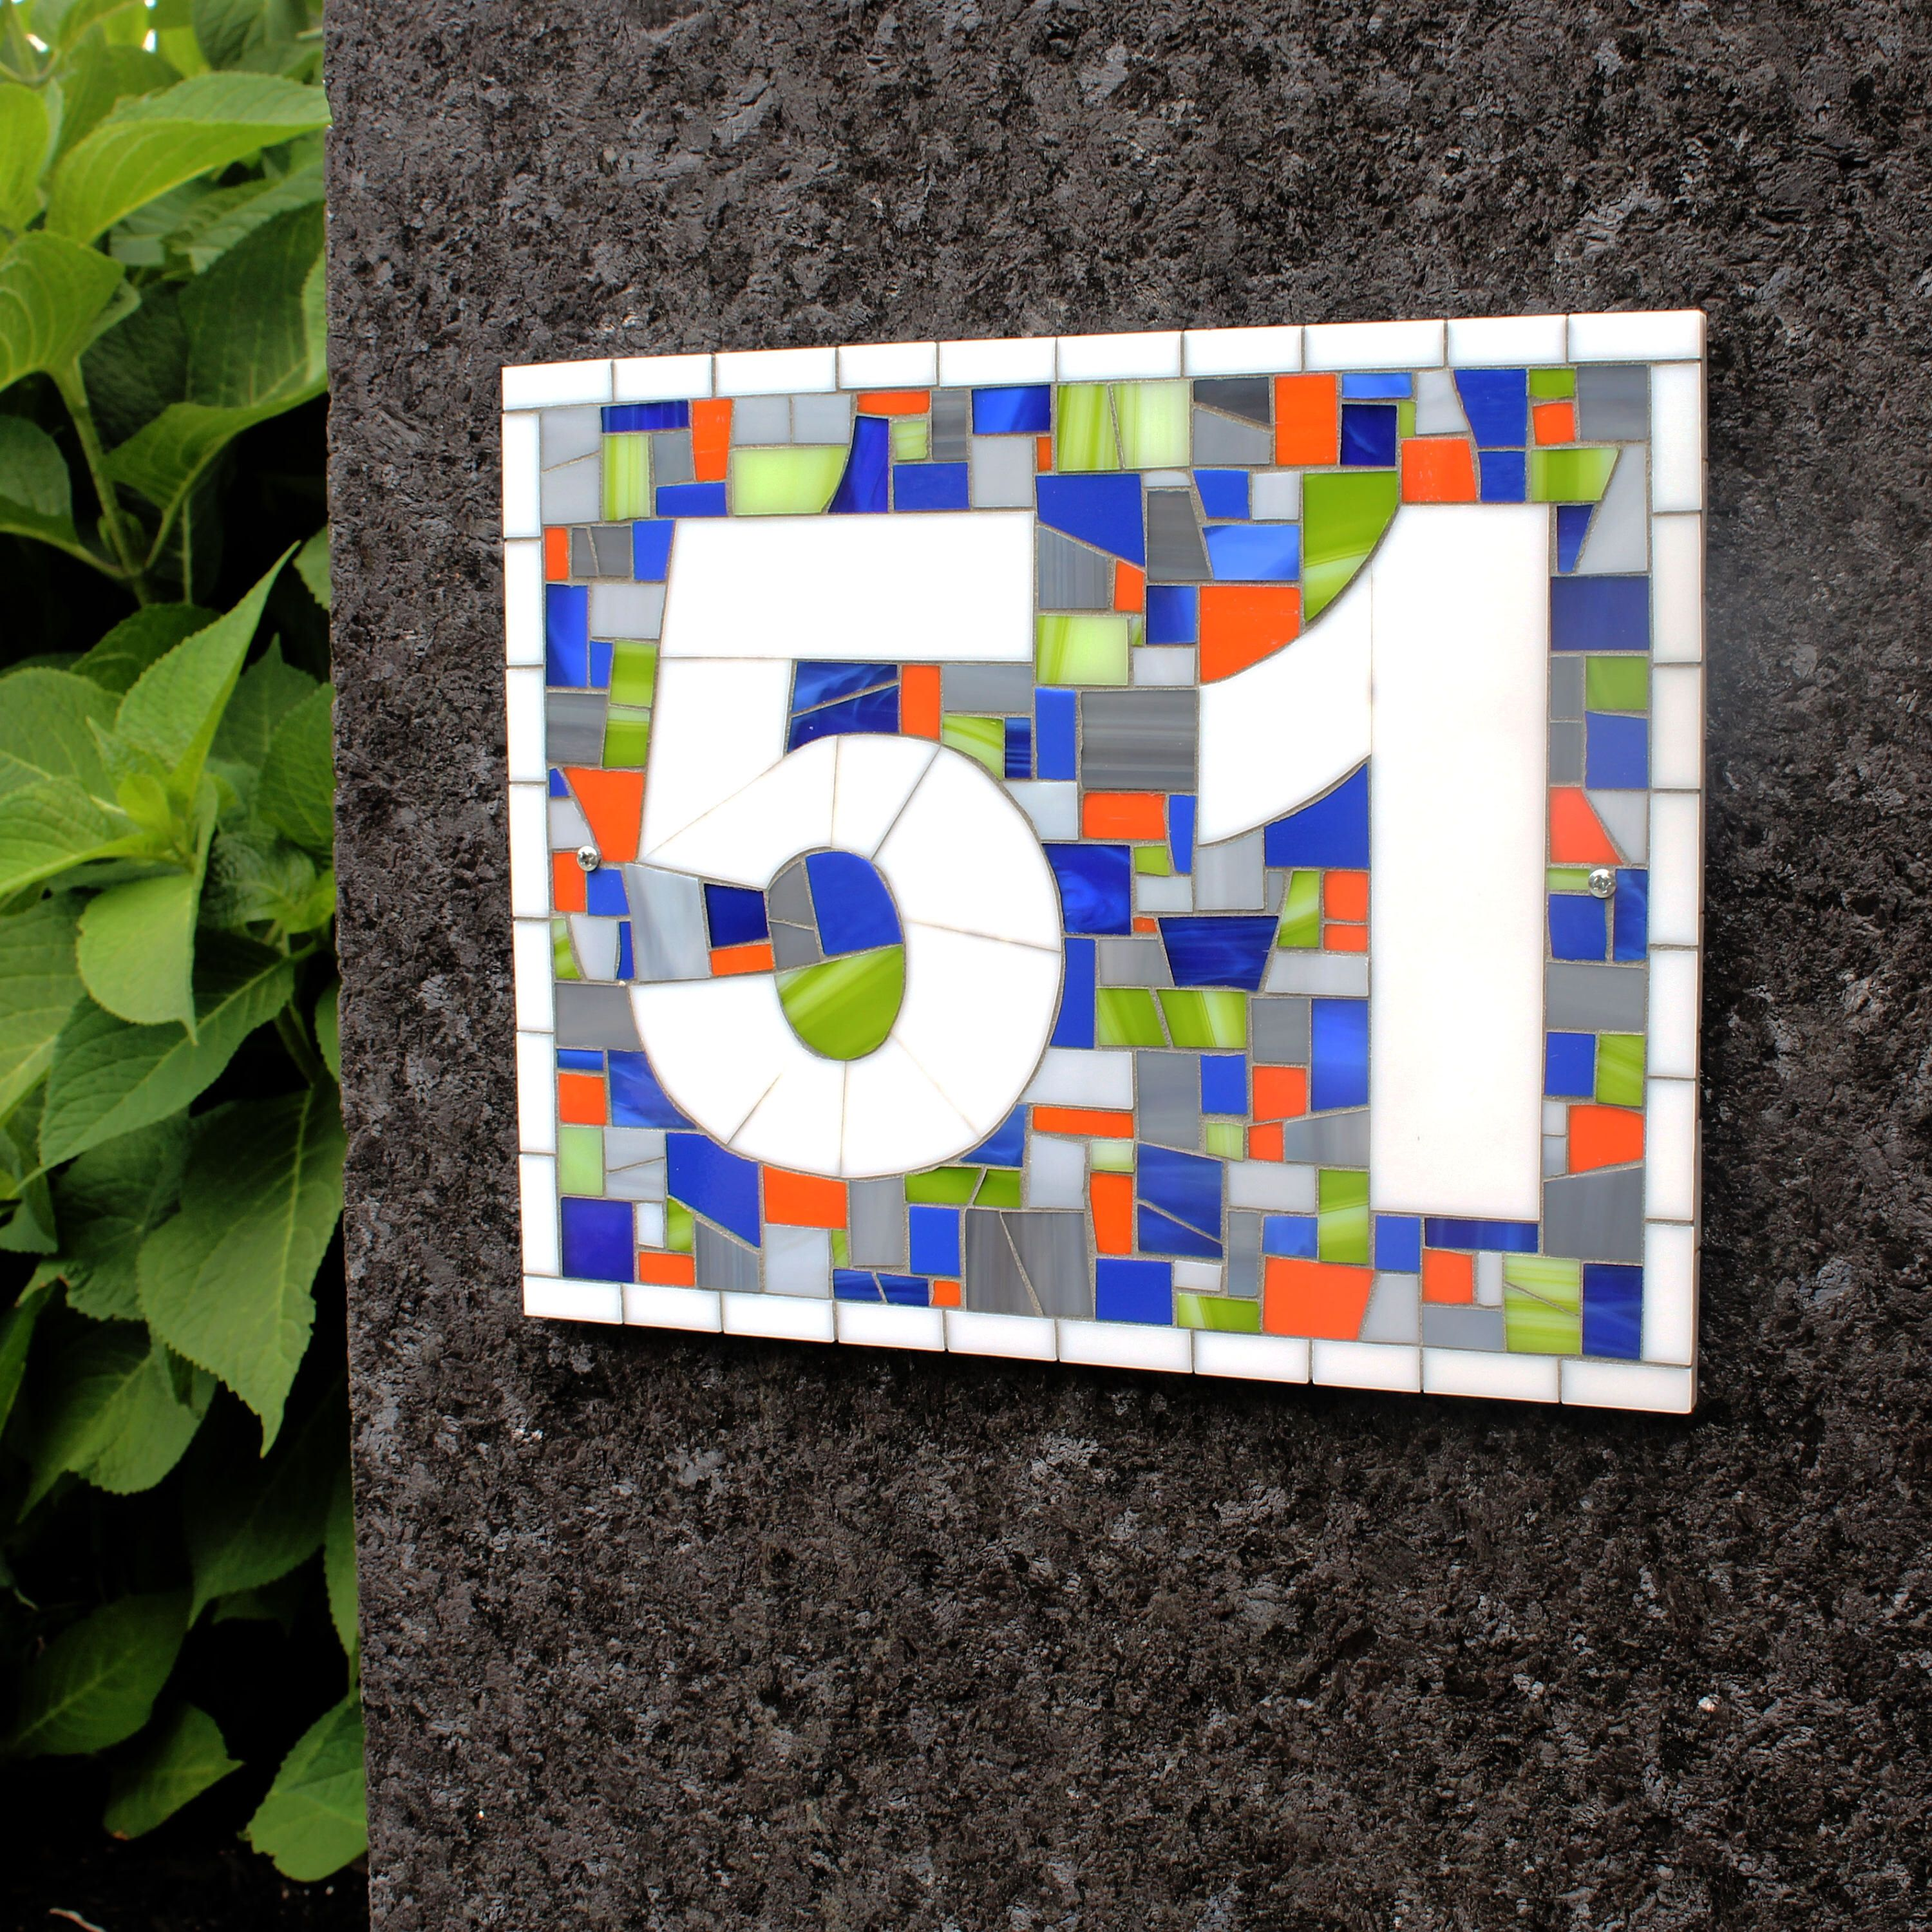 Mosaic house number plaque for blue house by liveinmosaics on etsy mosaic house number plaque for blue house by liveinmosaics on etsy httpswww dailygadgetfo Gallery